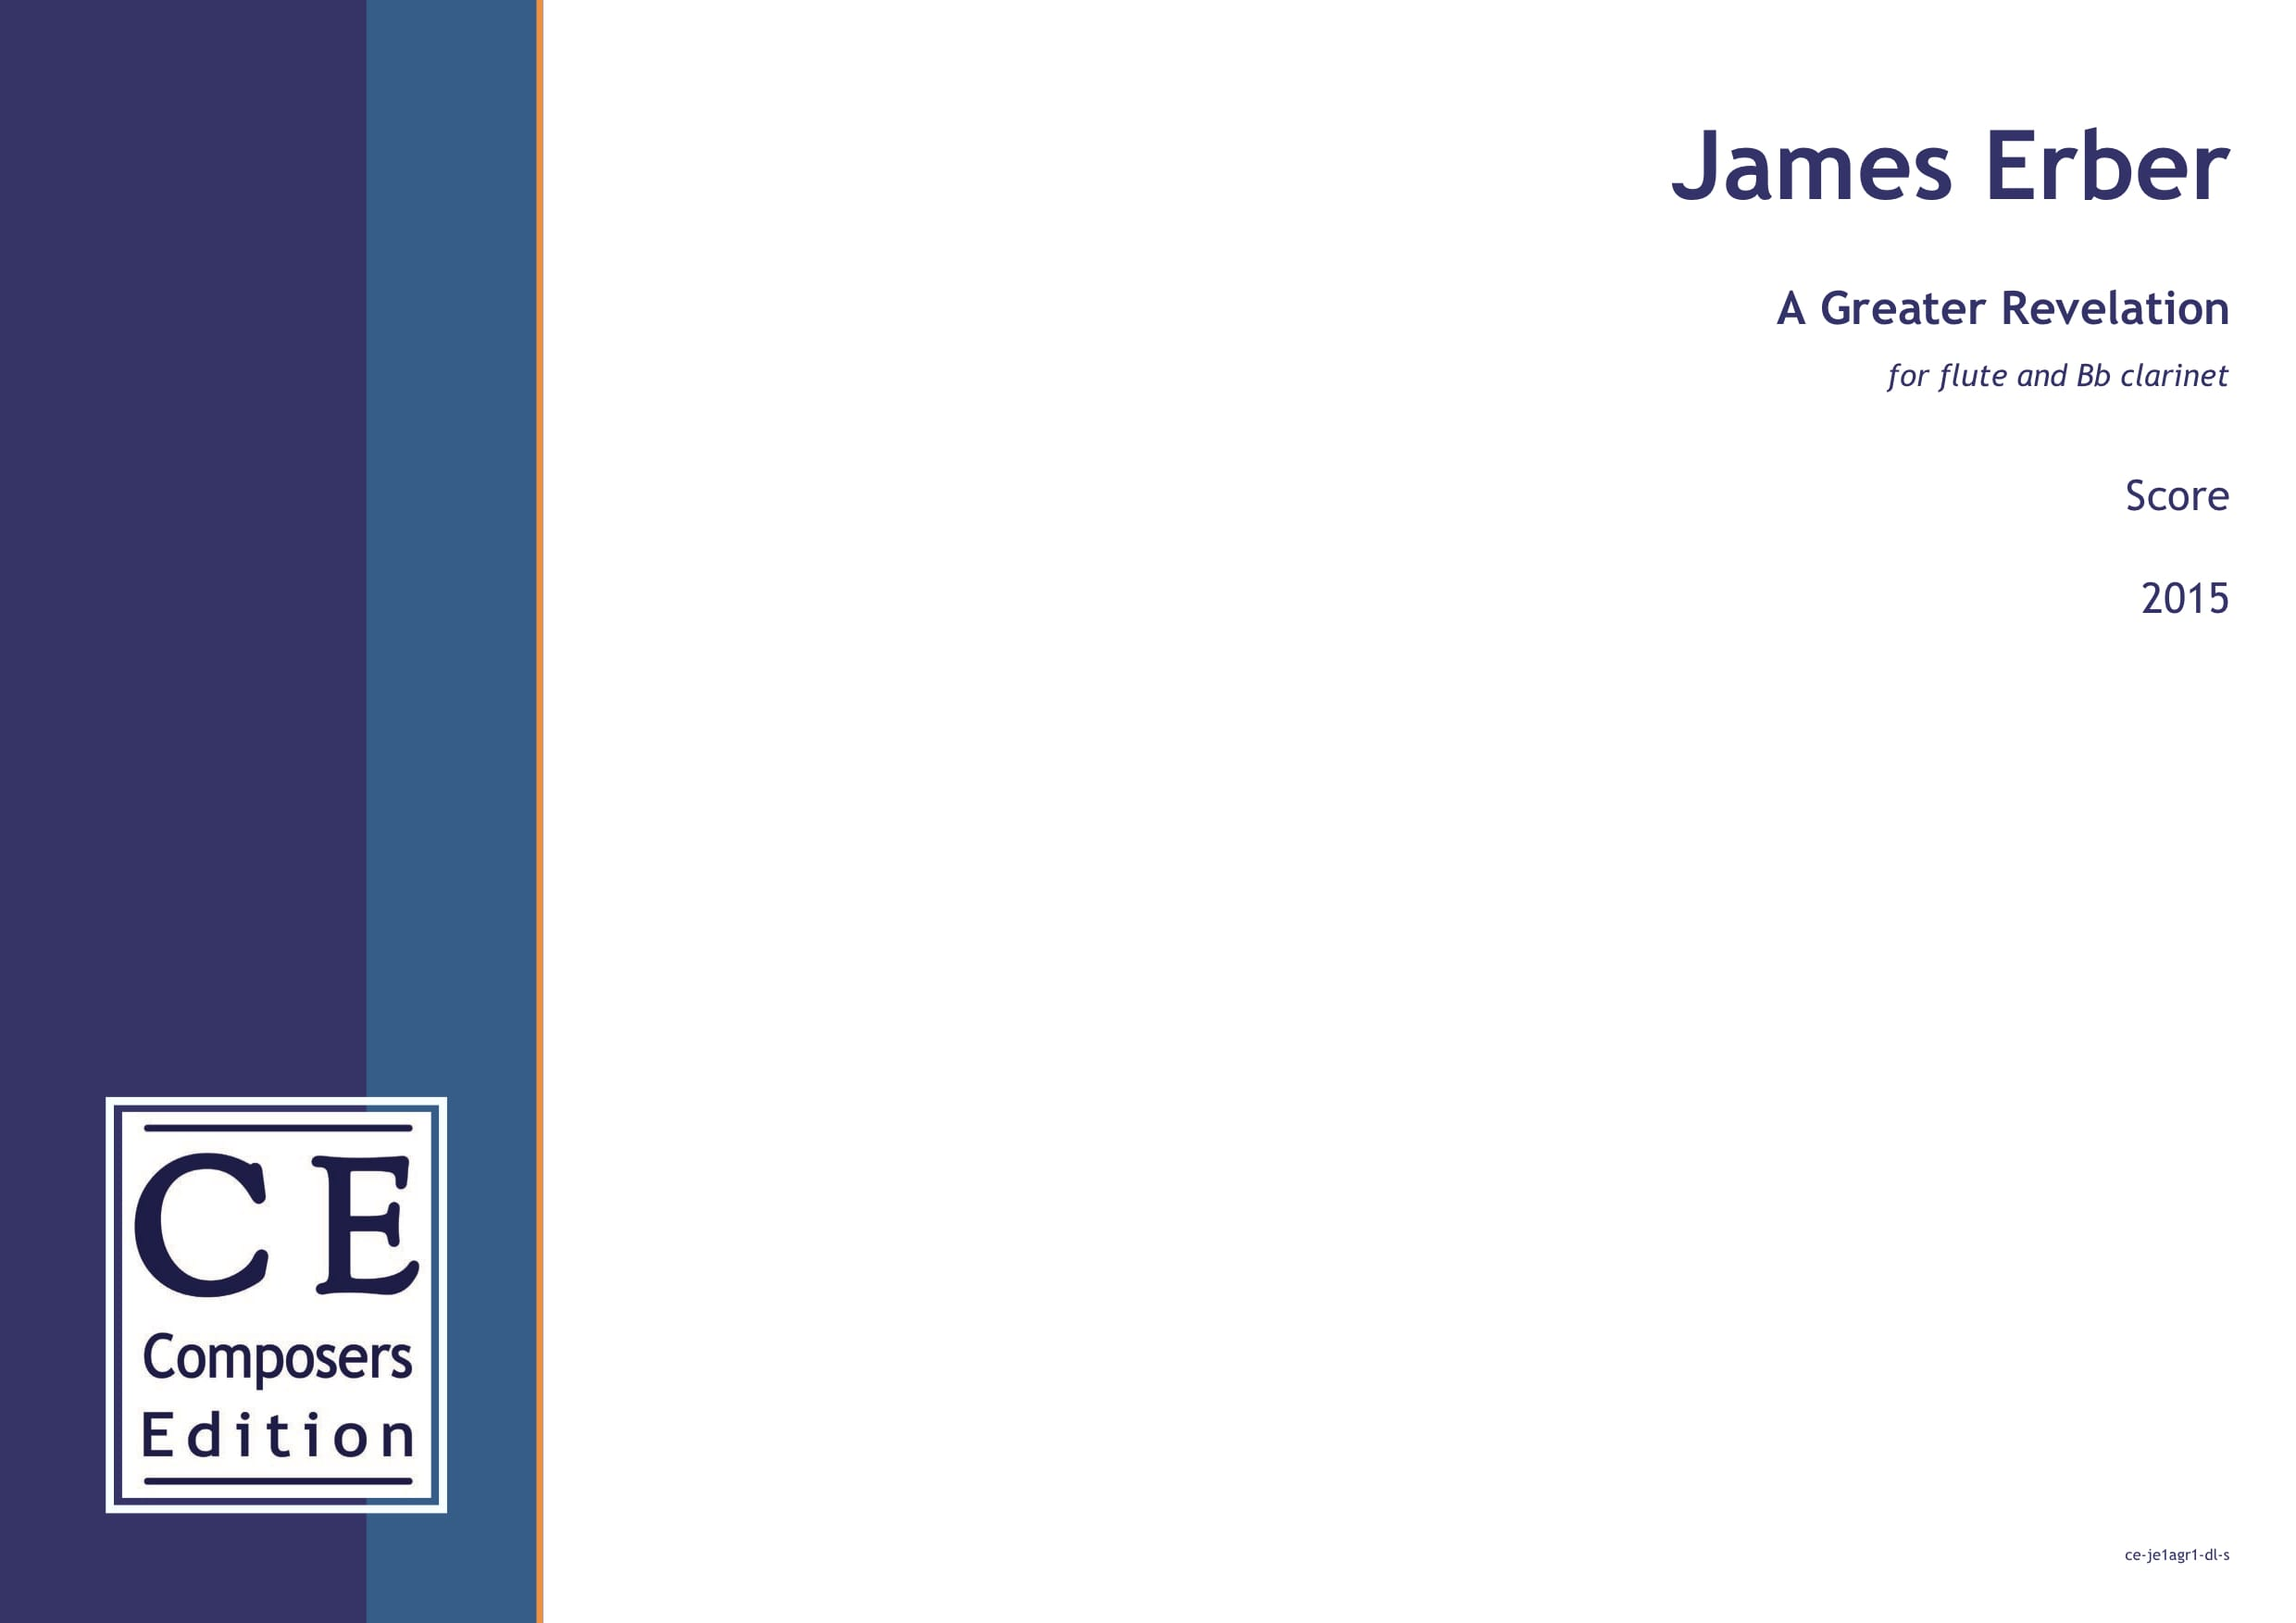 James Erber: A Greater Revelation for flute and clarinet